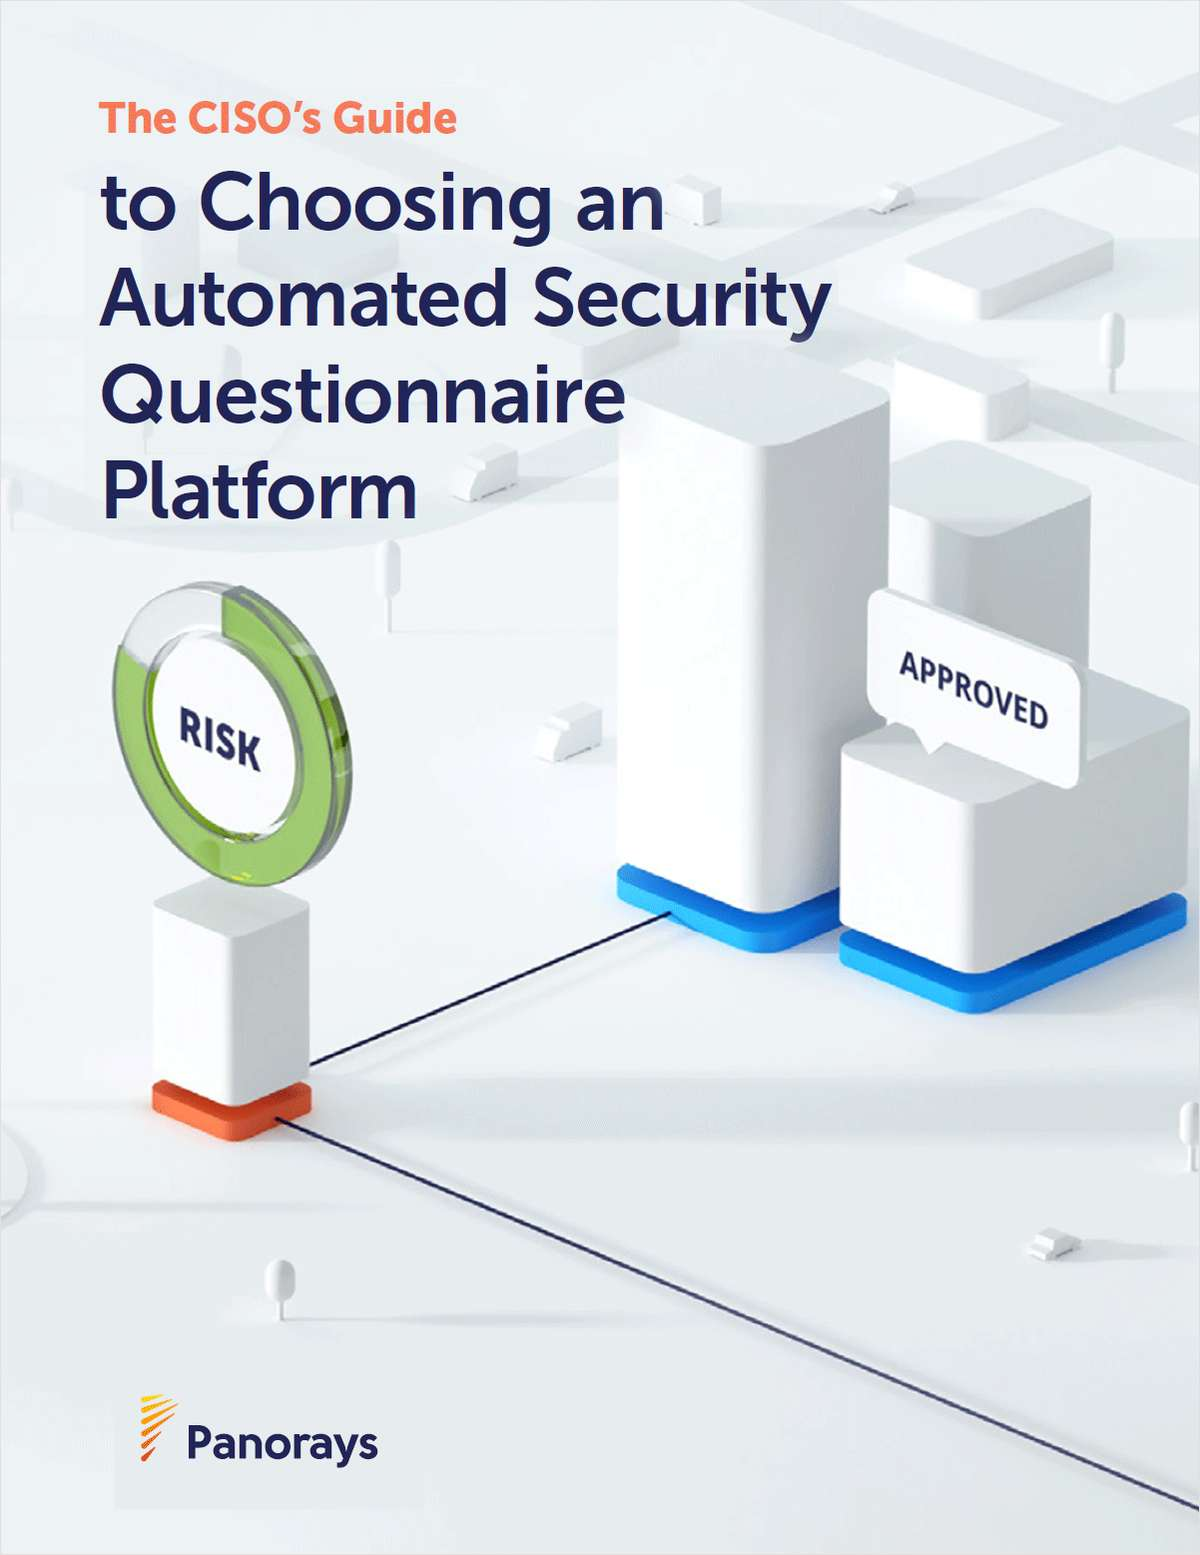 The CISO's Guide to Choosing an Automated Security Questionnaire Platform